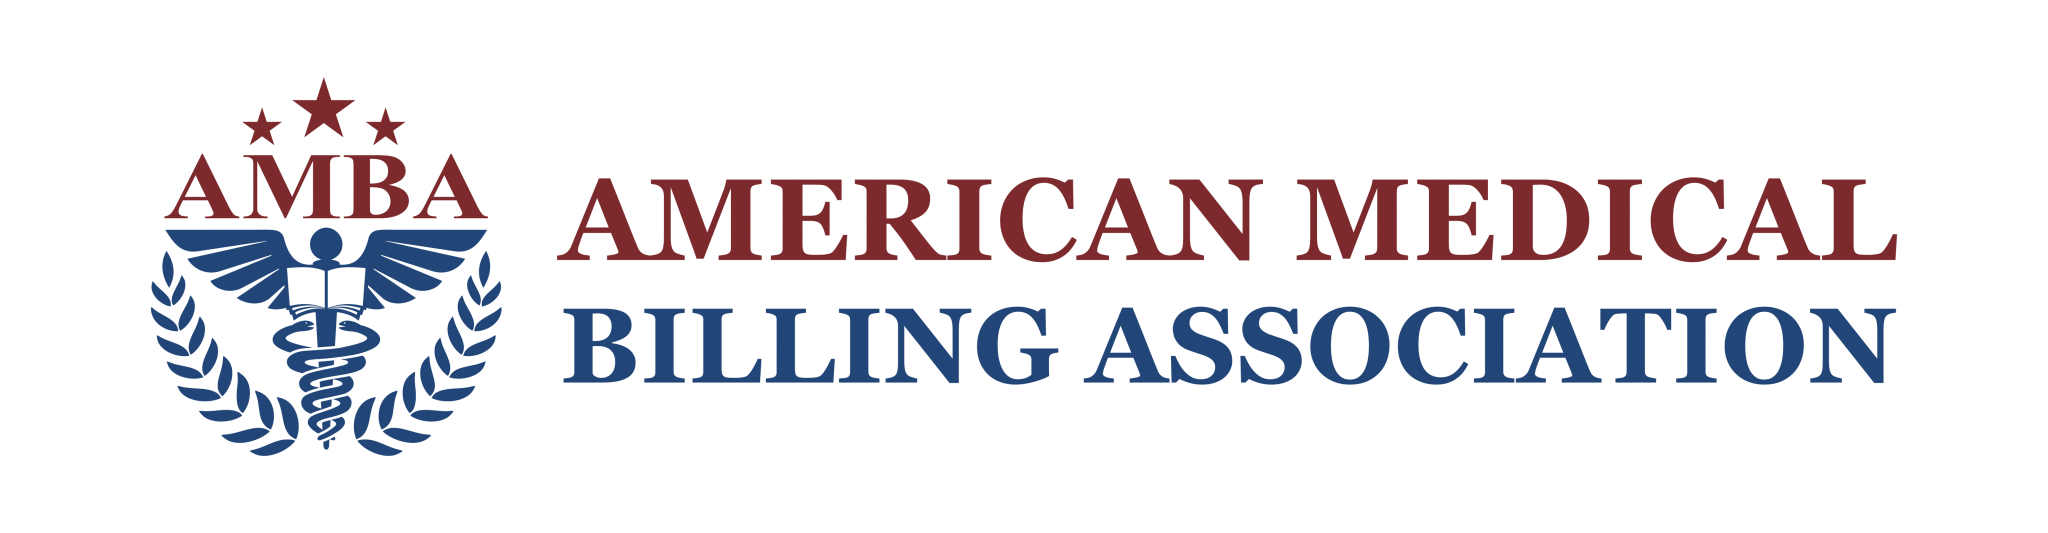 american medical billing association logo